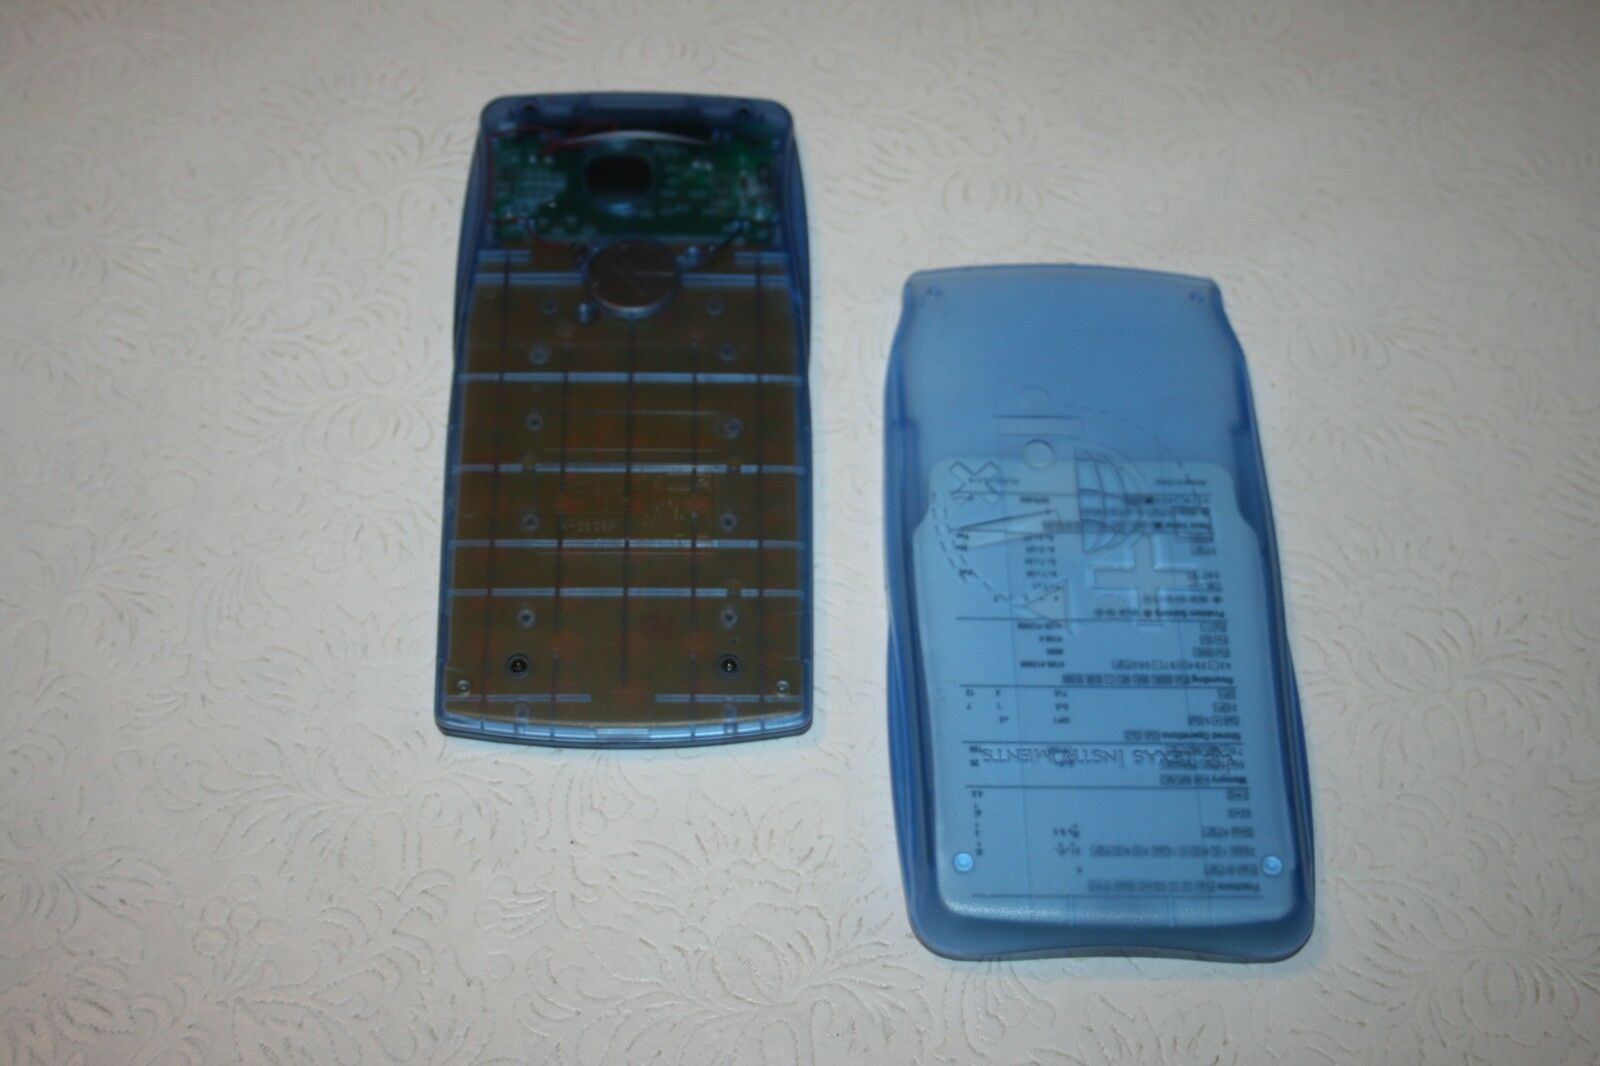 Pre-owned Texas Instruments, TI-15 calculator